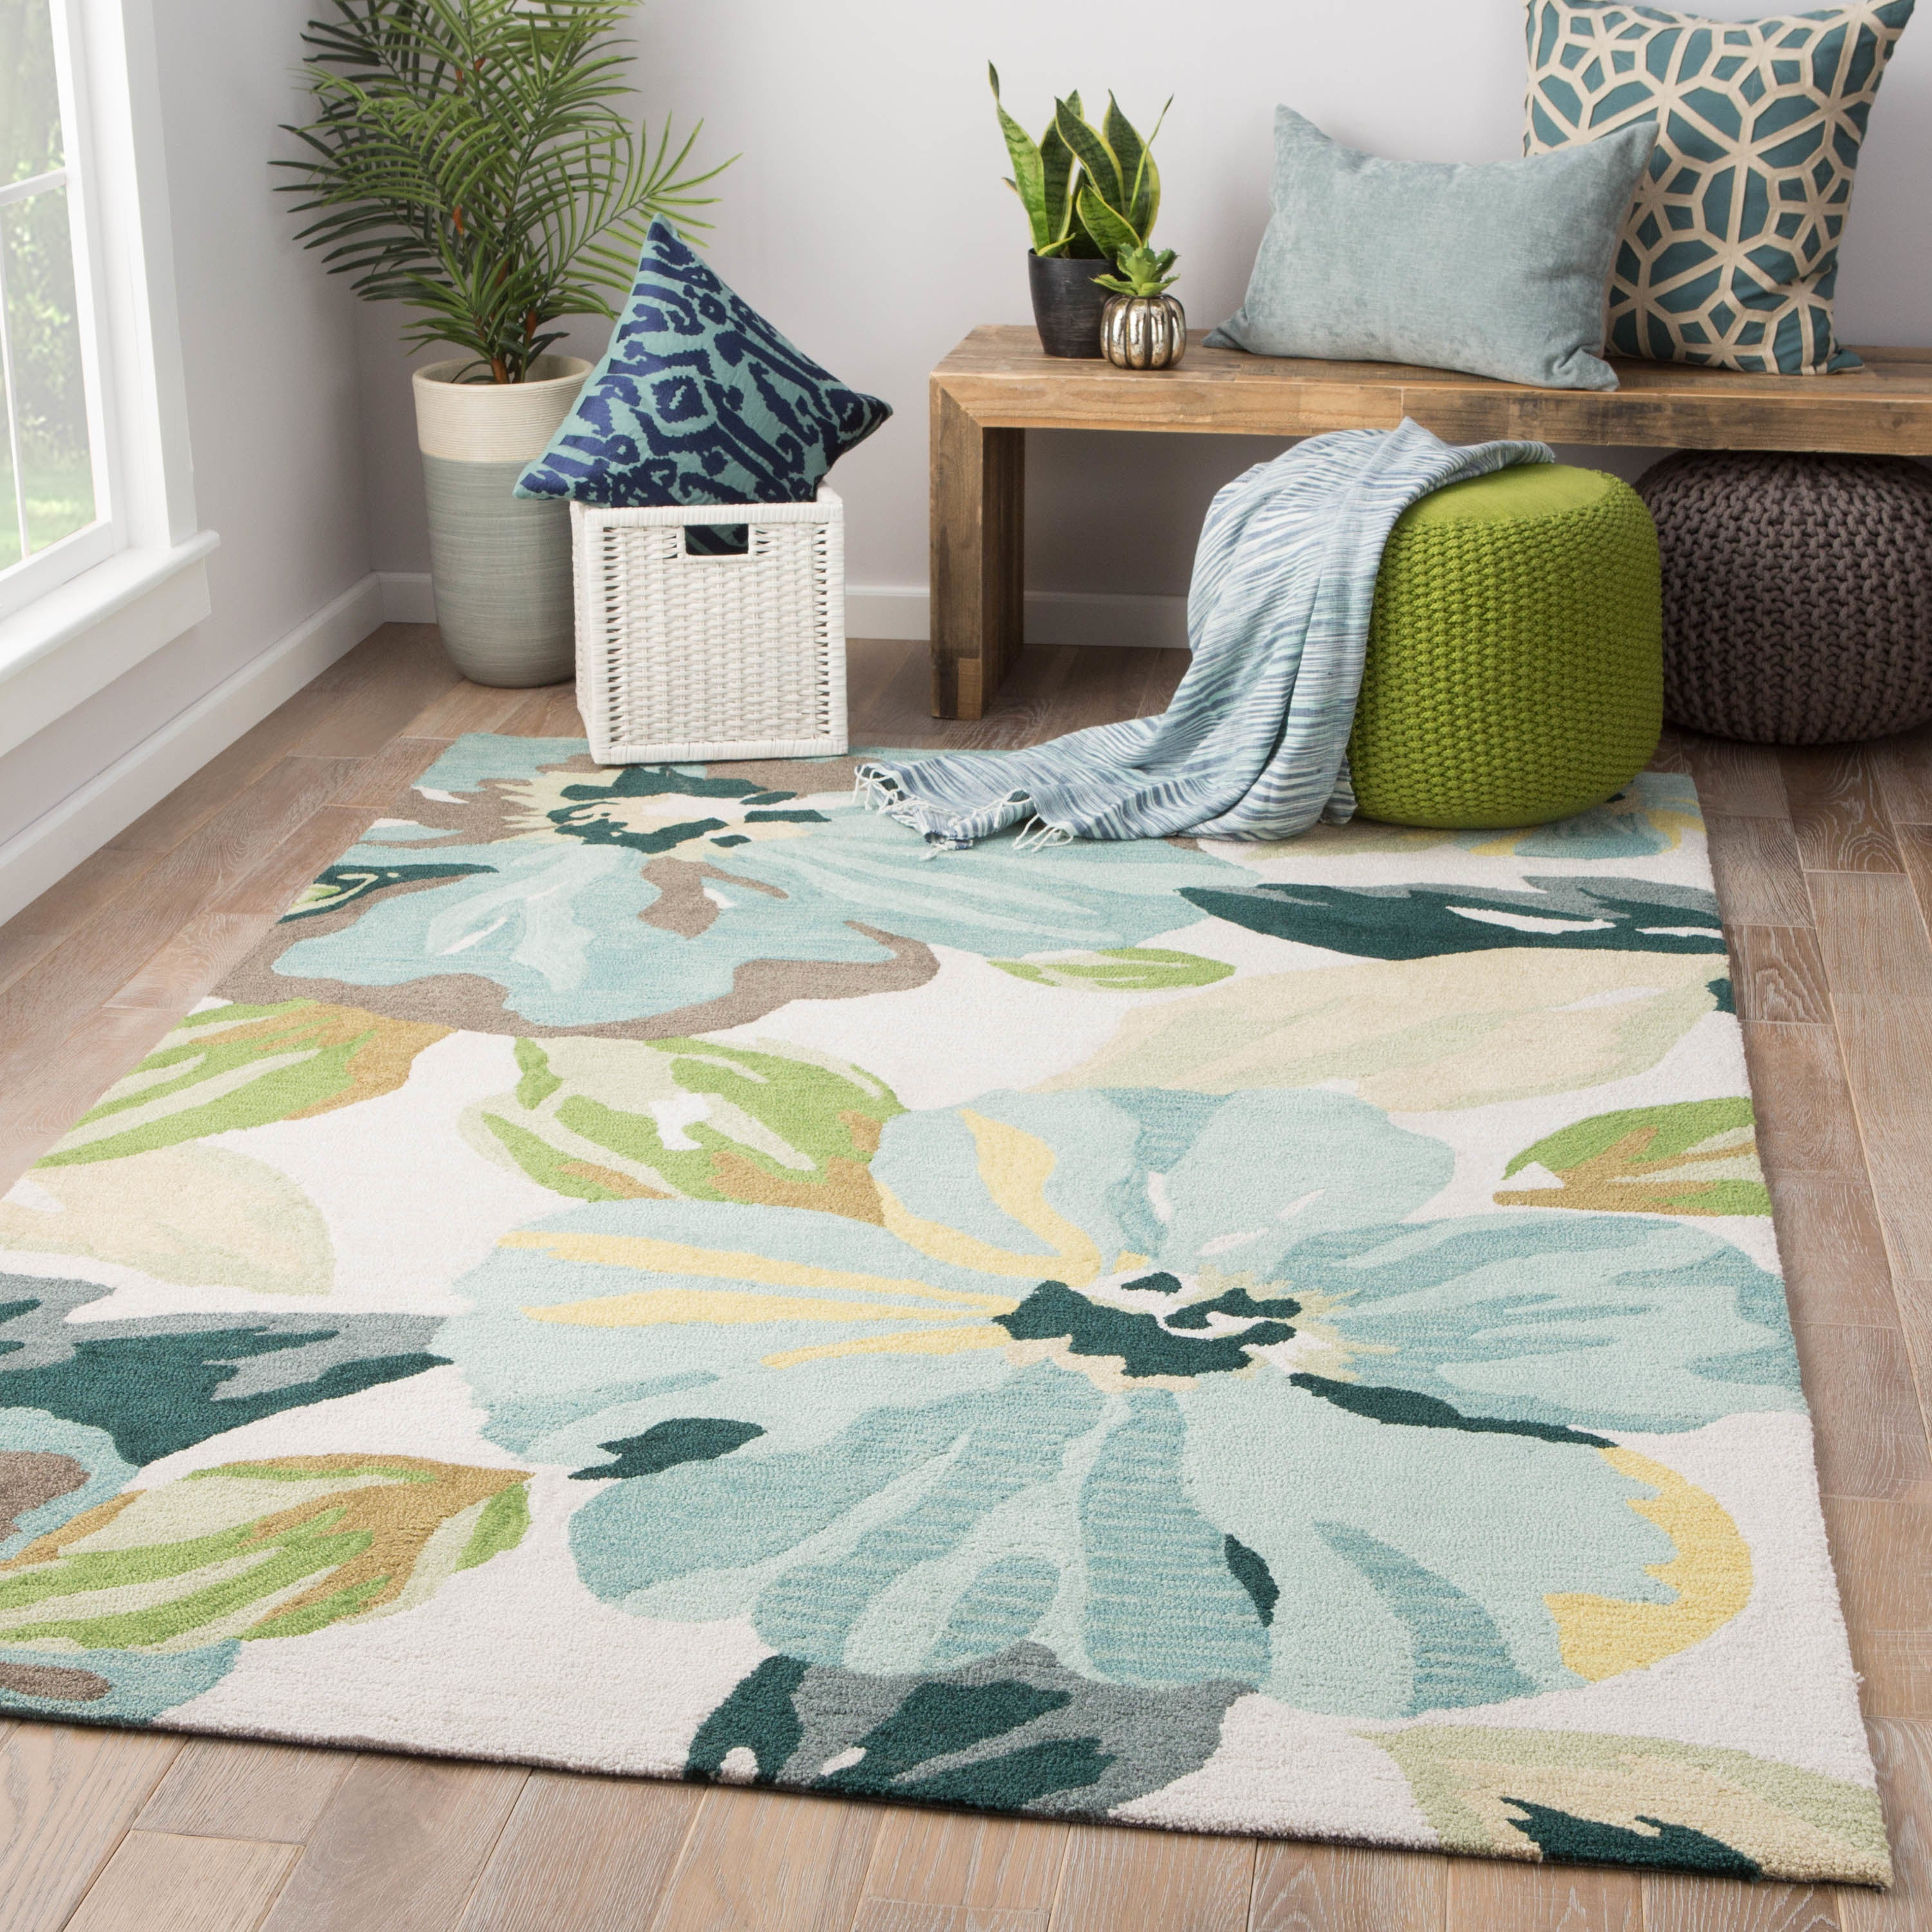 Juniper Home Isidore Blue Green Handmade Floral Area Rug 7 6 x 9